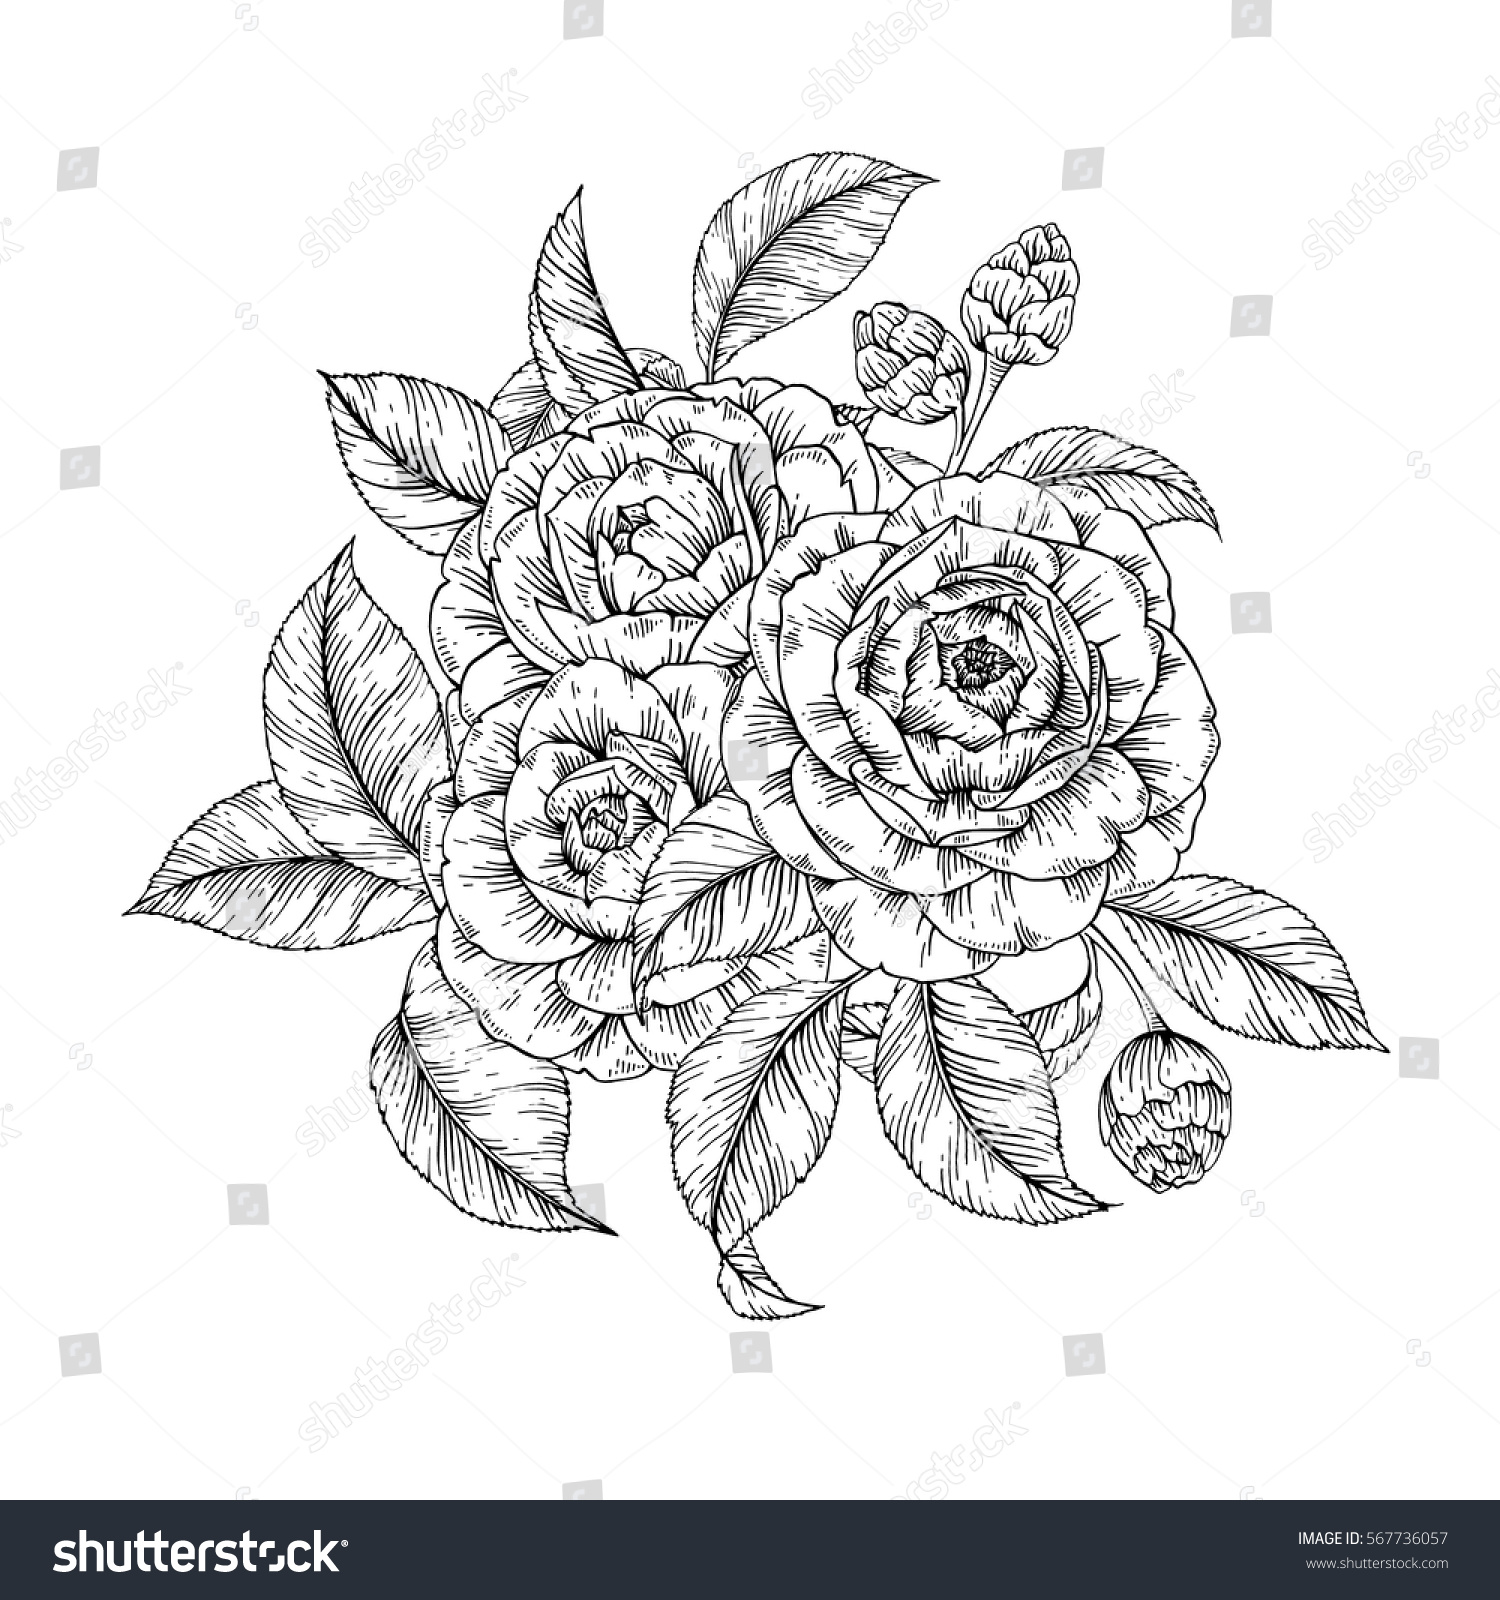 Vector hand drawn bouquet flowers retro stock vector royalty free vector hand drawn bouquet of flowers in retro style floral vintage posy background for print izmirmasajfo